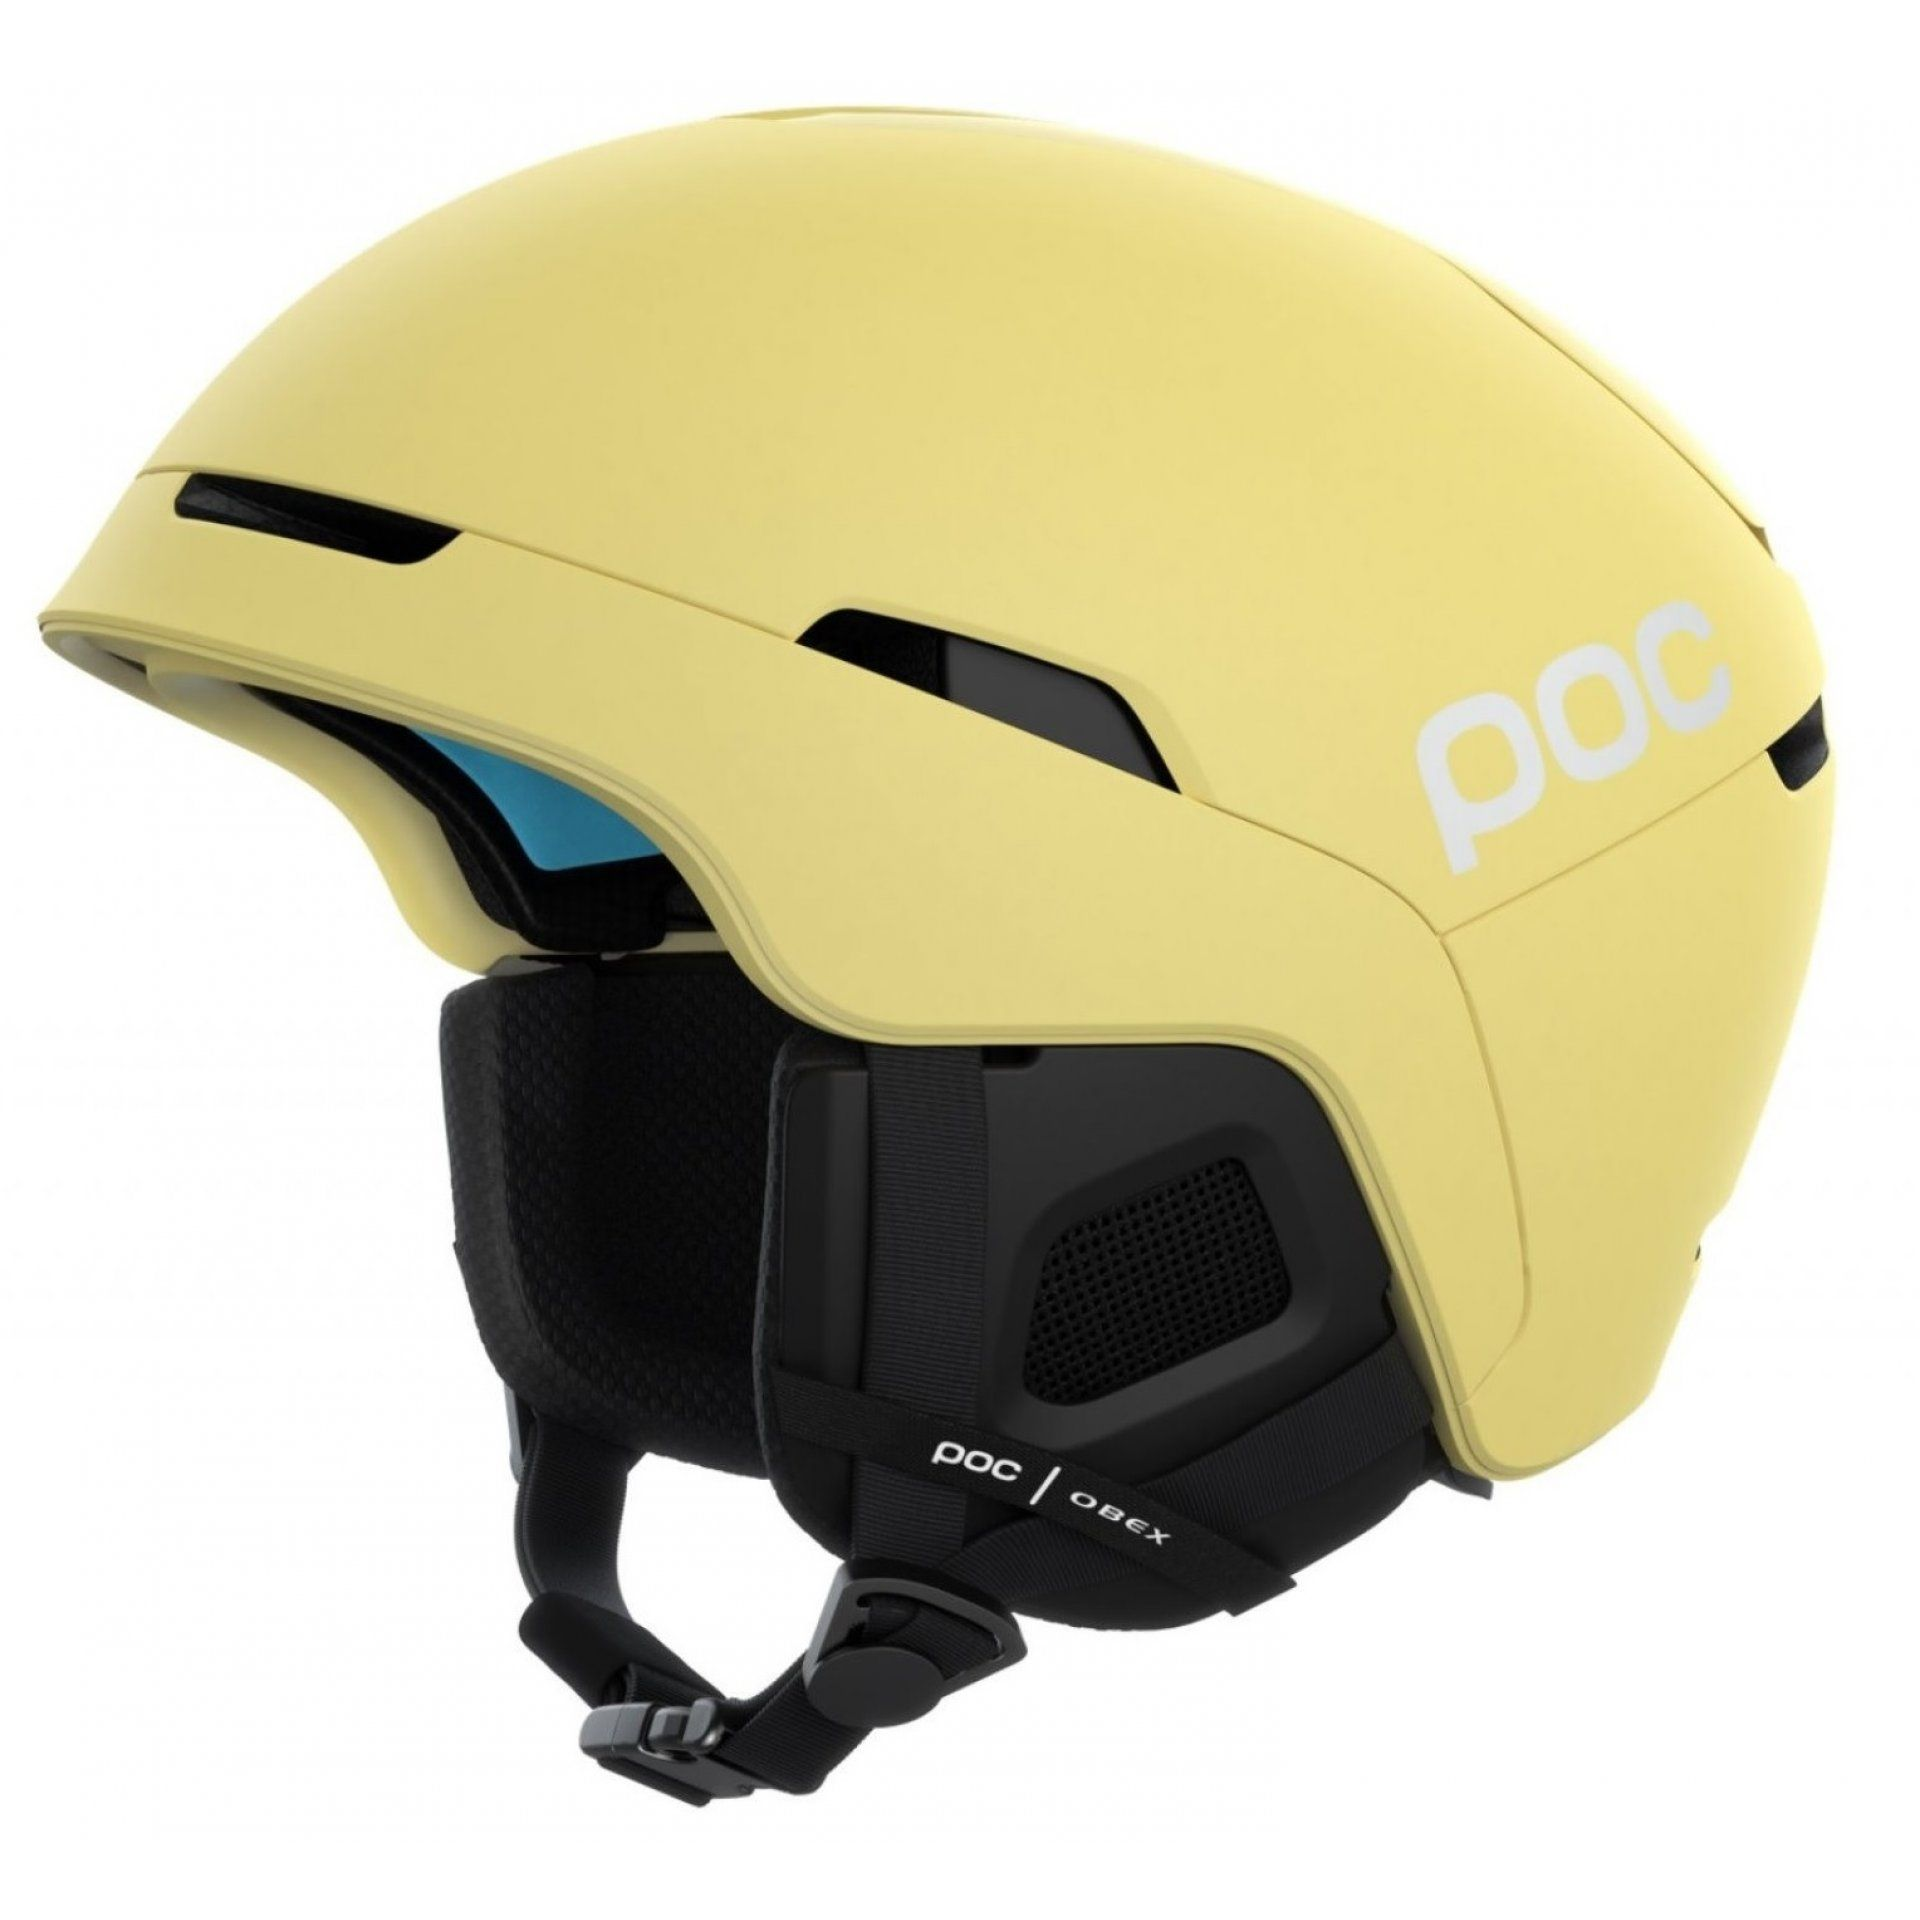 KASK POC OBEX SPIN 10103 1322 LIGHT SULFUR YELLOW